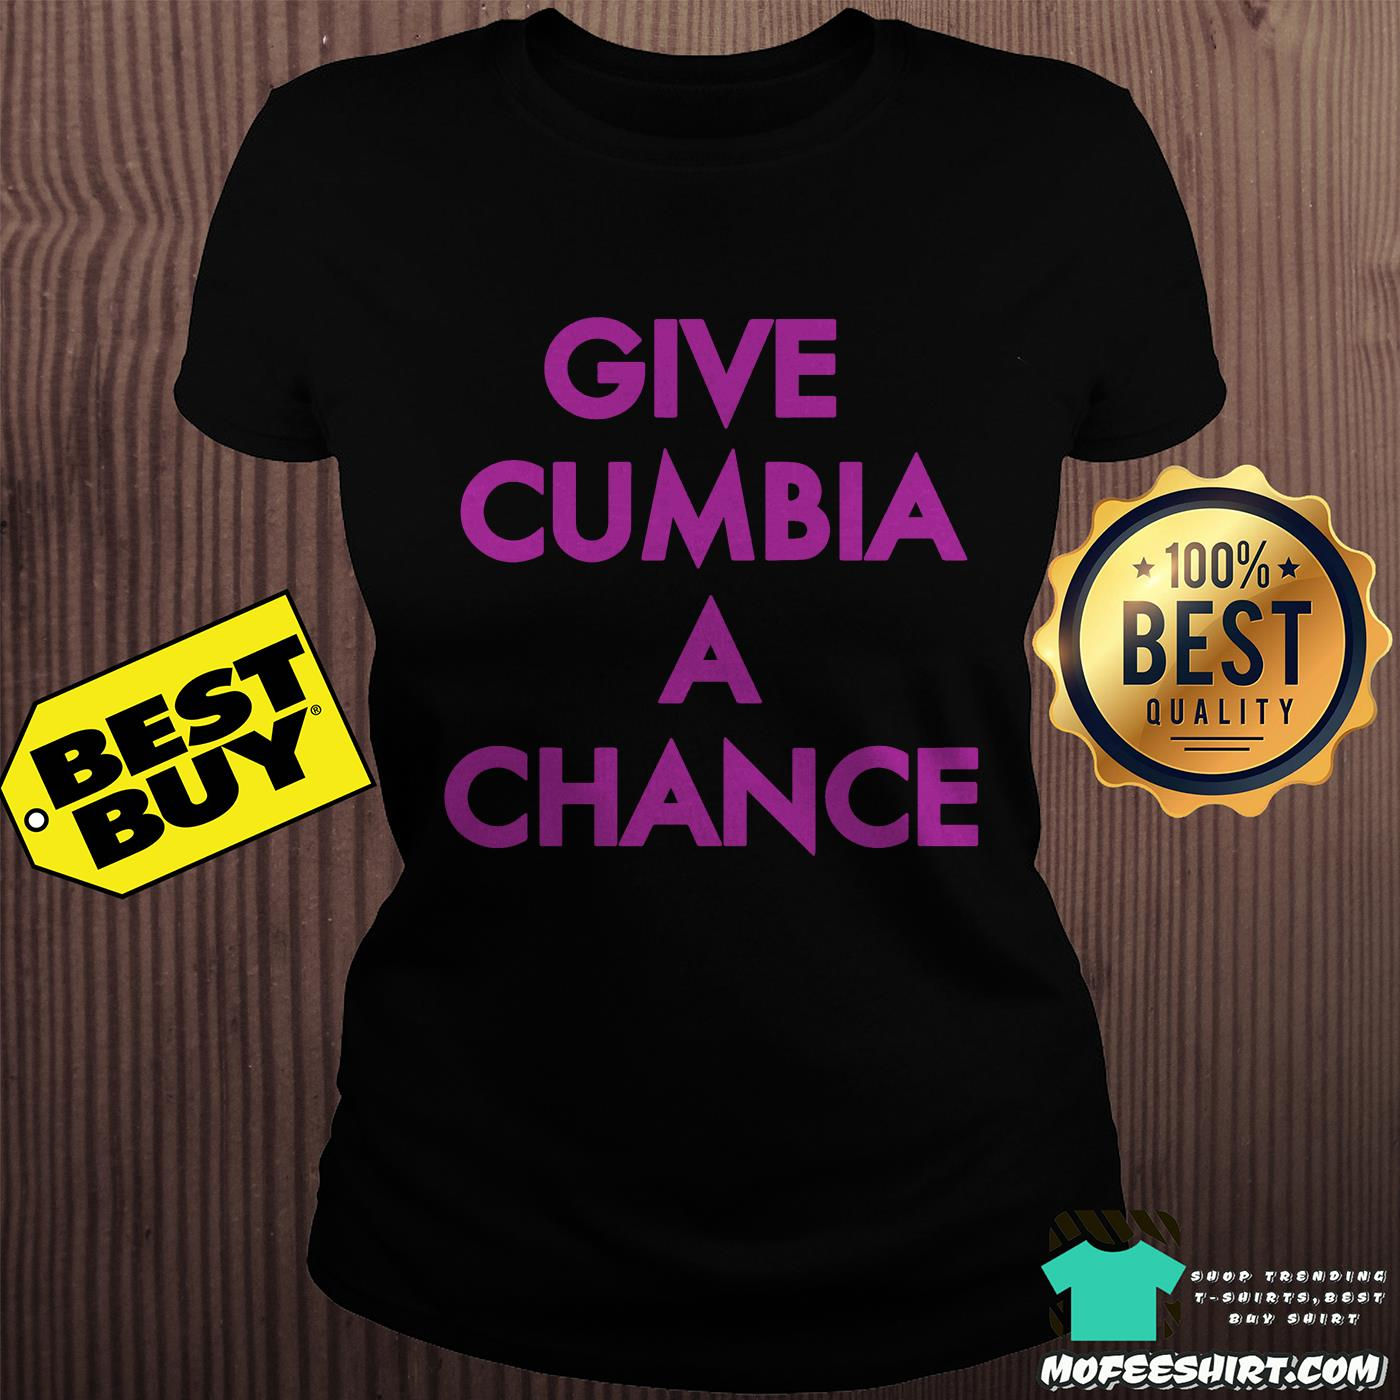 mexican institute of sound give cumbia a chance ladies tee - Mexican Institute of Sound Give Cumbia a chance shirt